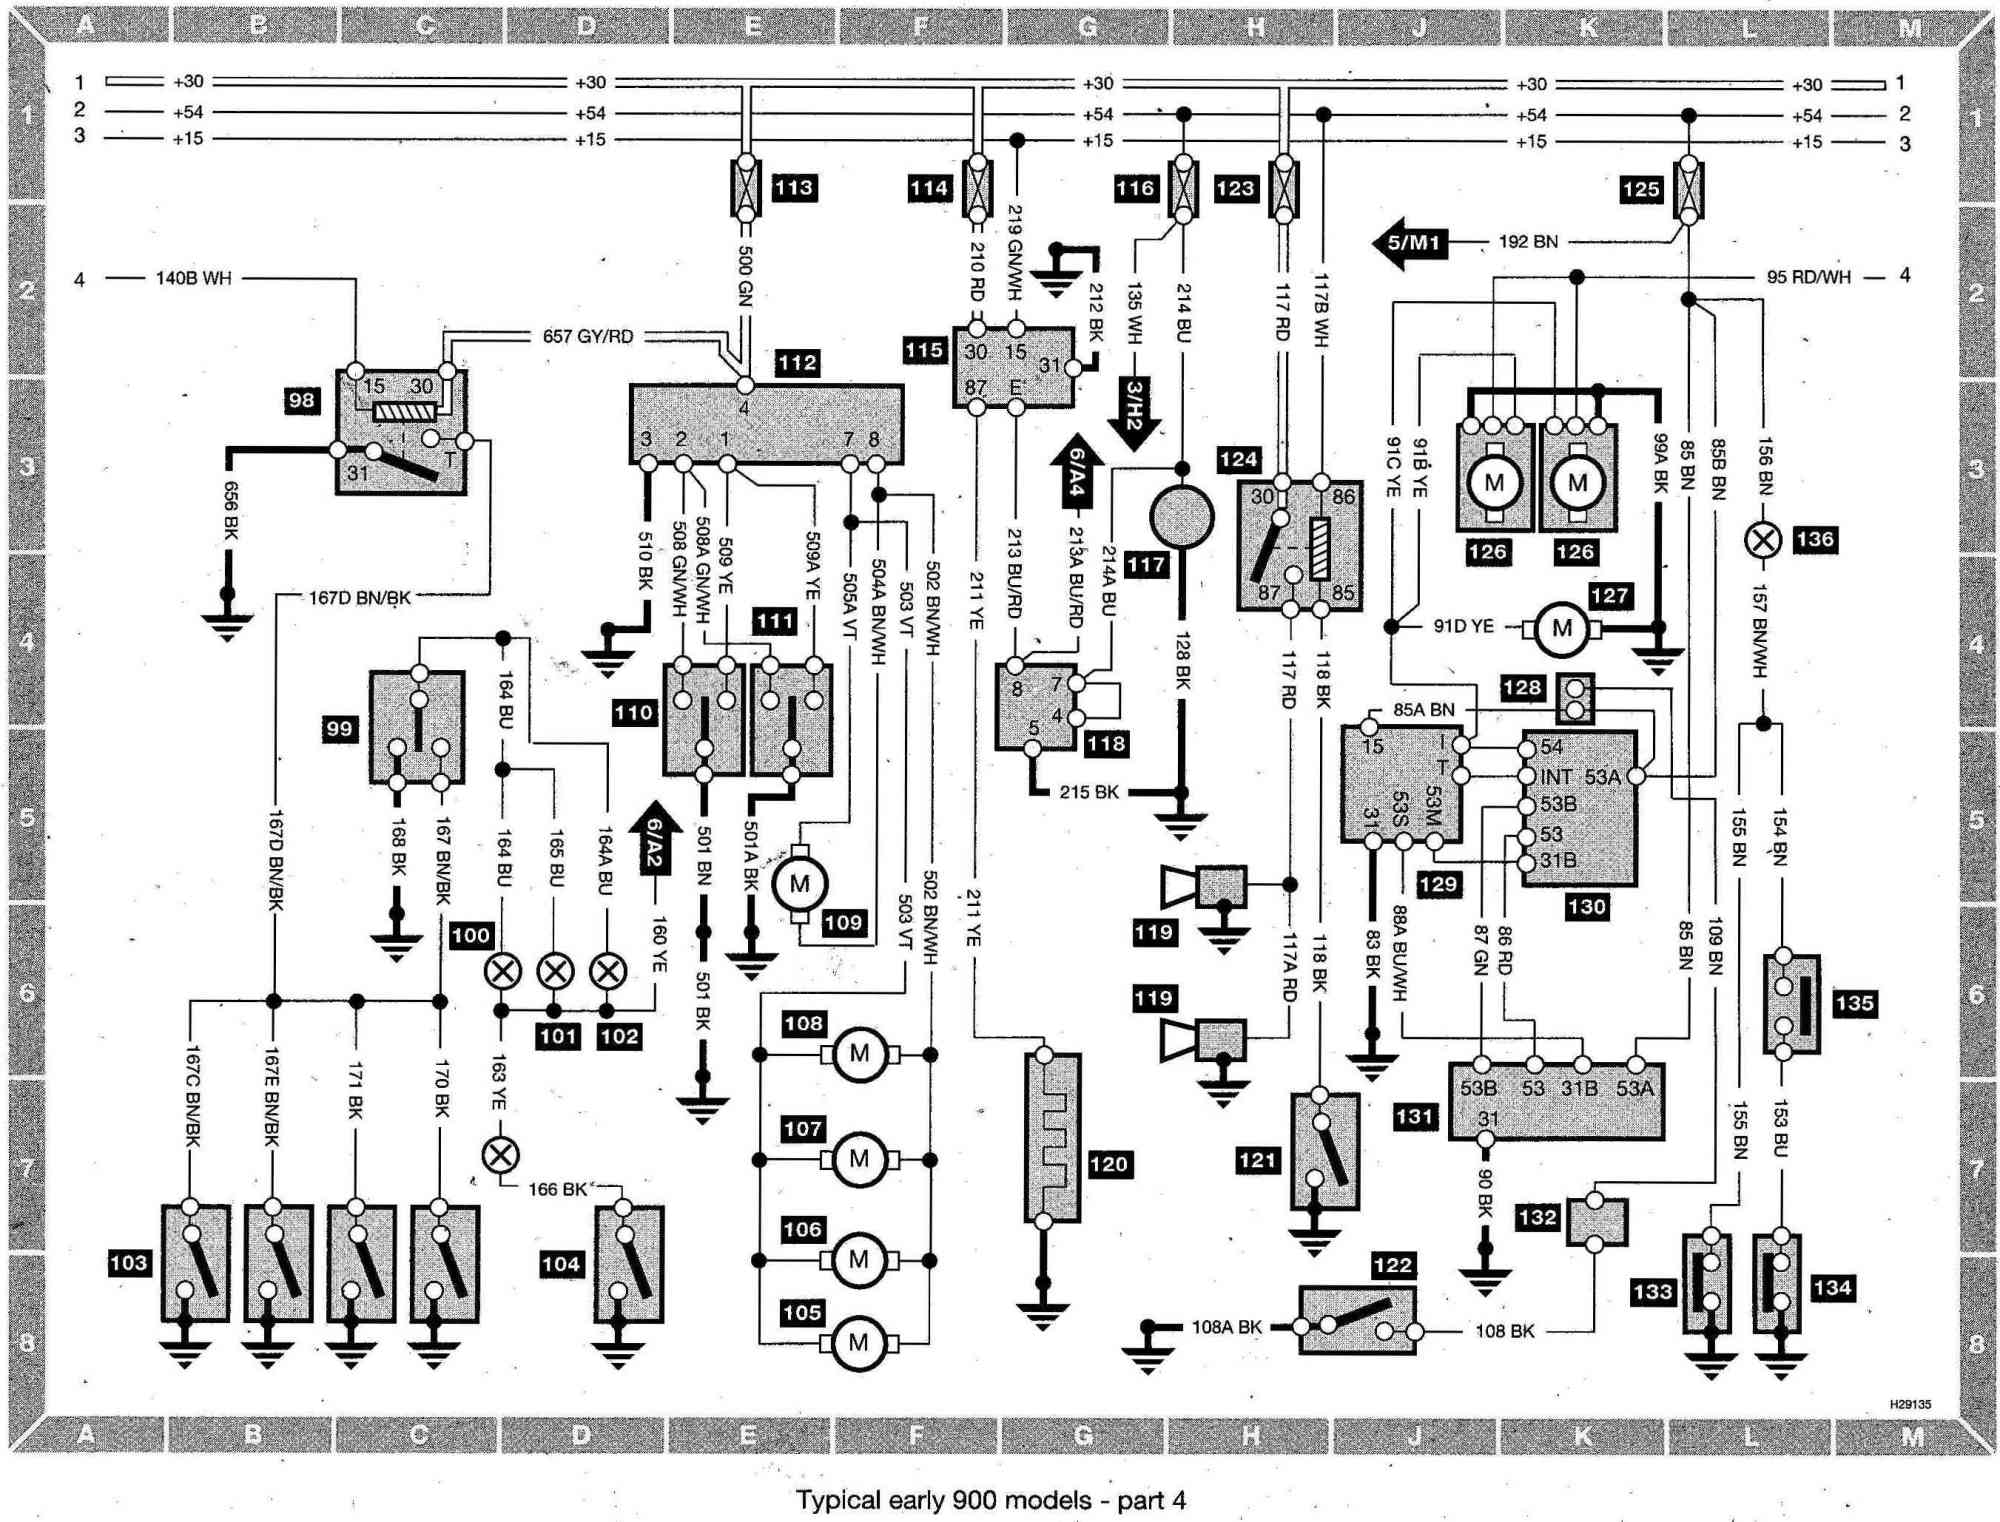 hight resolution of wiring diagram for 1990 saab 900 wiring diagram database 1990 saab 900 engine diagram